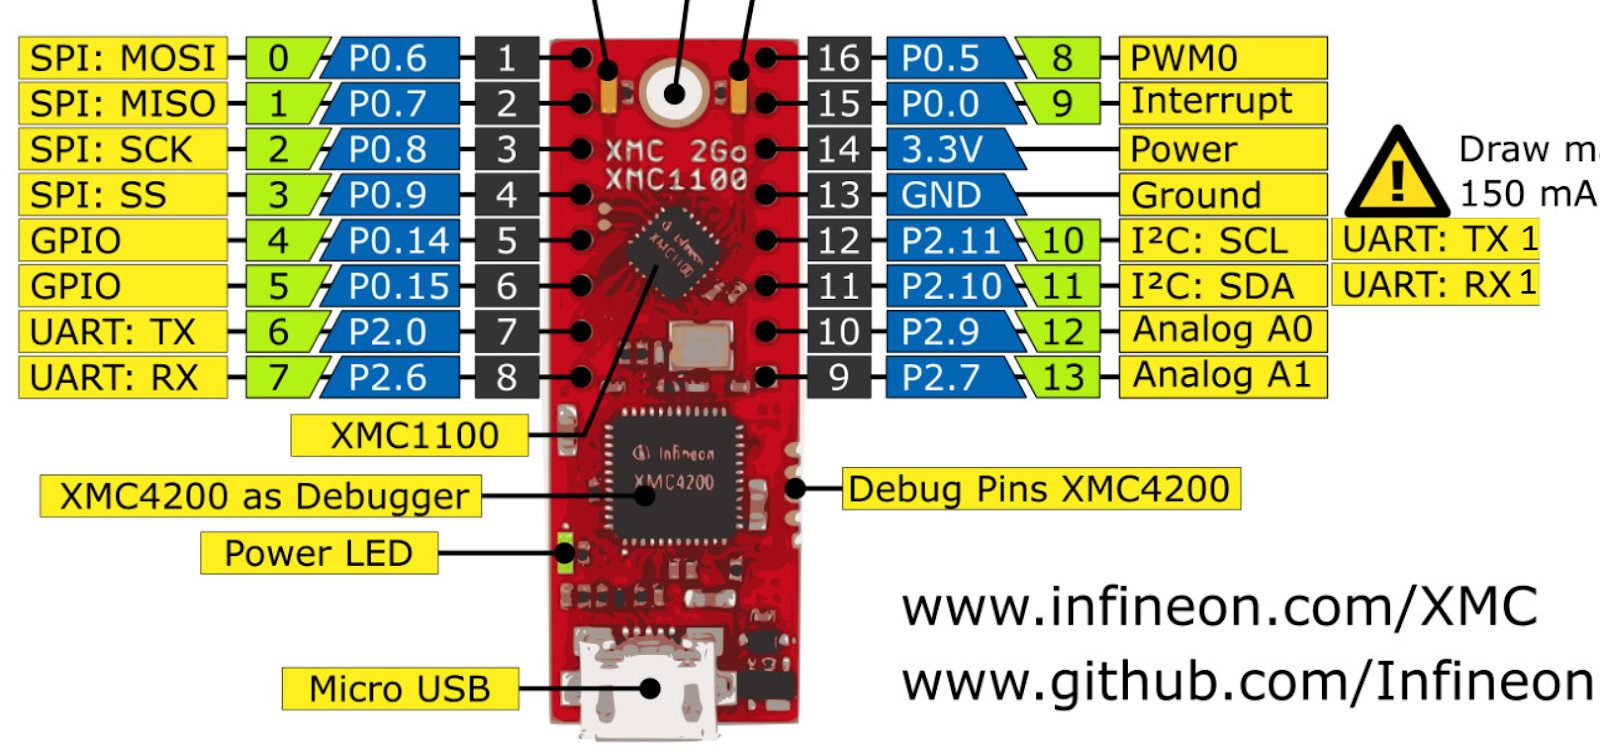 MyIoT: Infineon Shield2Go Boards for IoT - Review